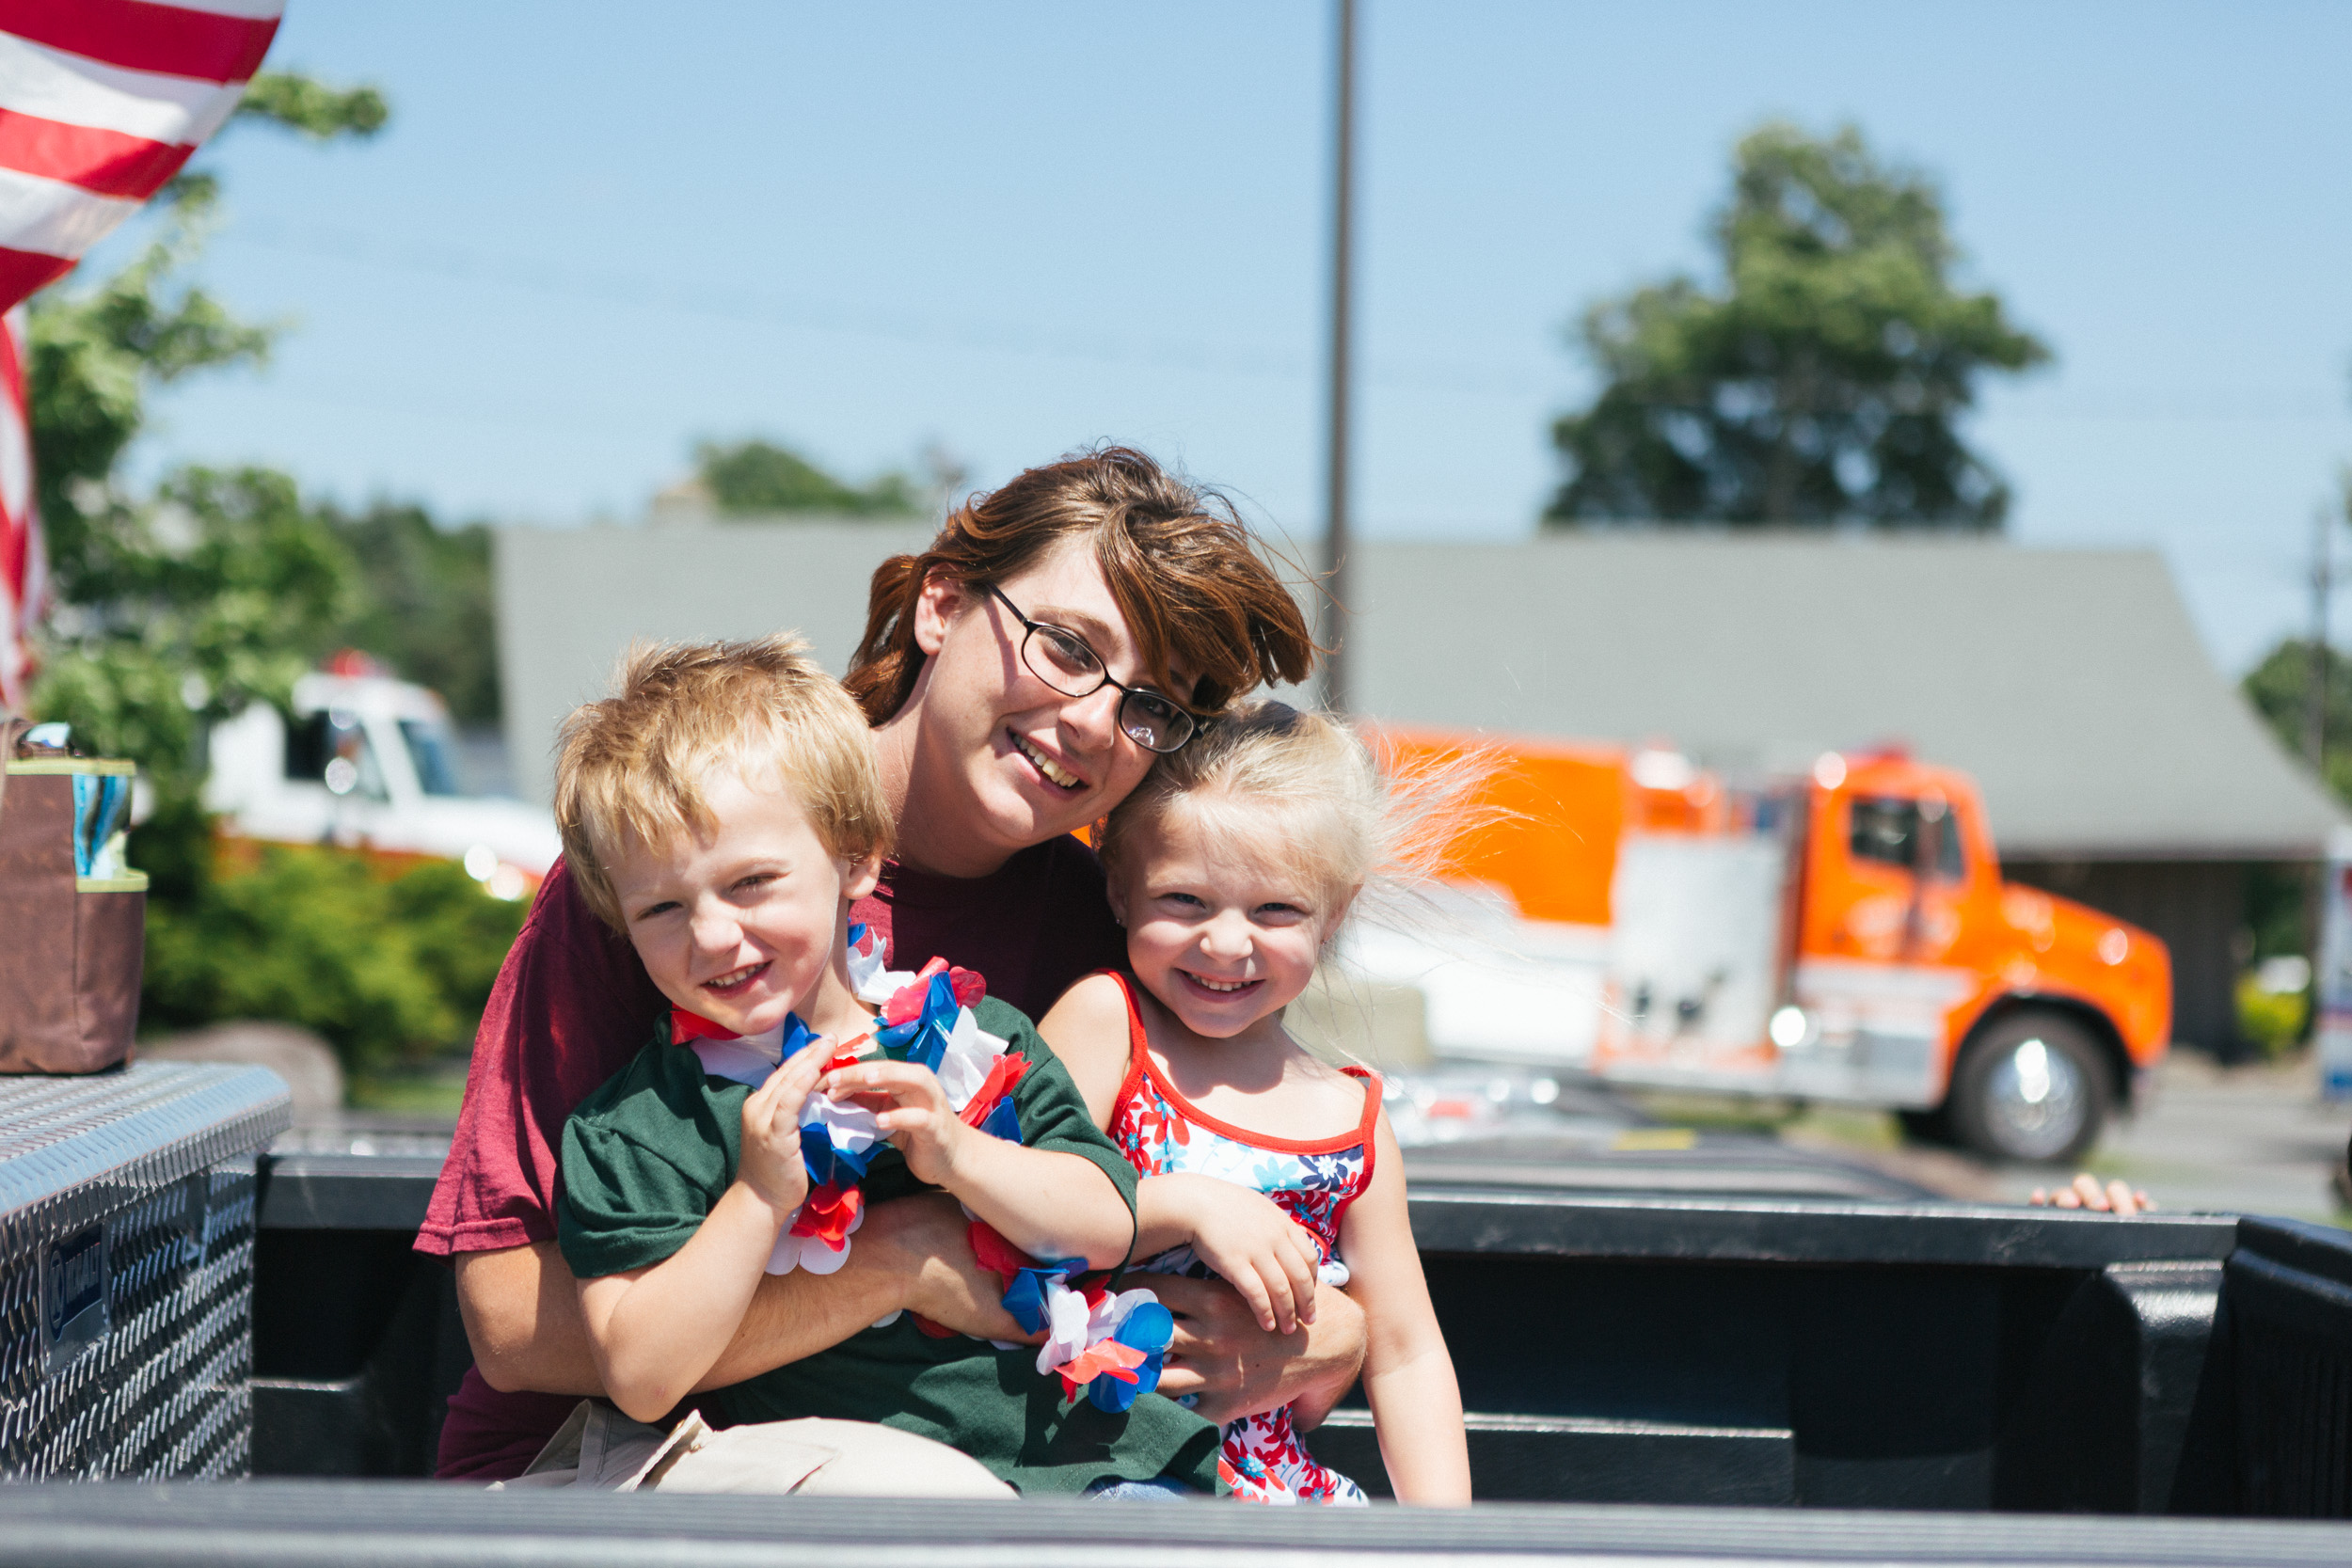 Heather, Stephan and Jaslyn get ready to ride a float in the Tannersville Parade.jpg